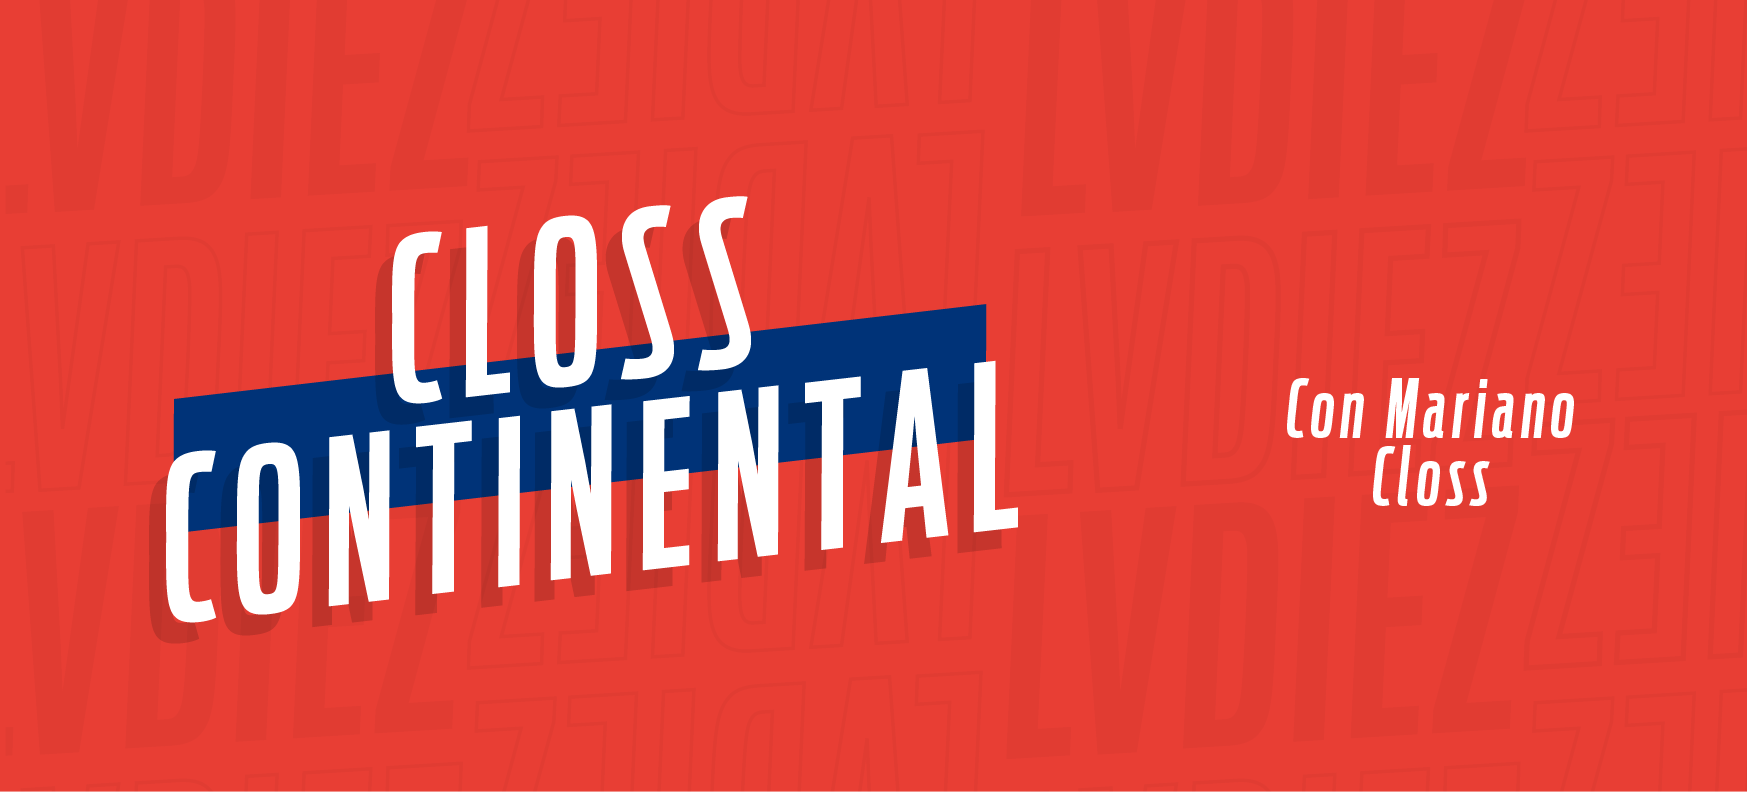 Closs Continental